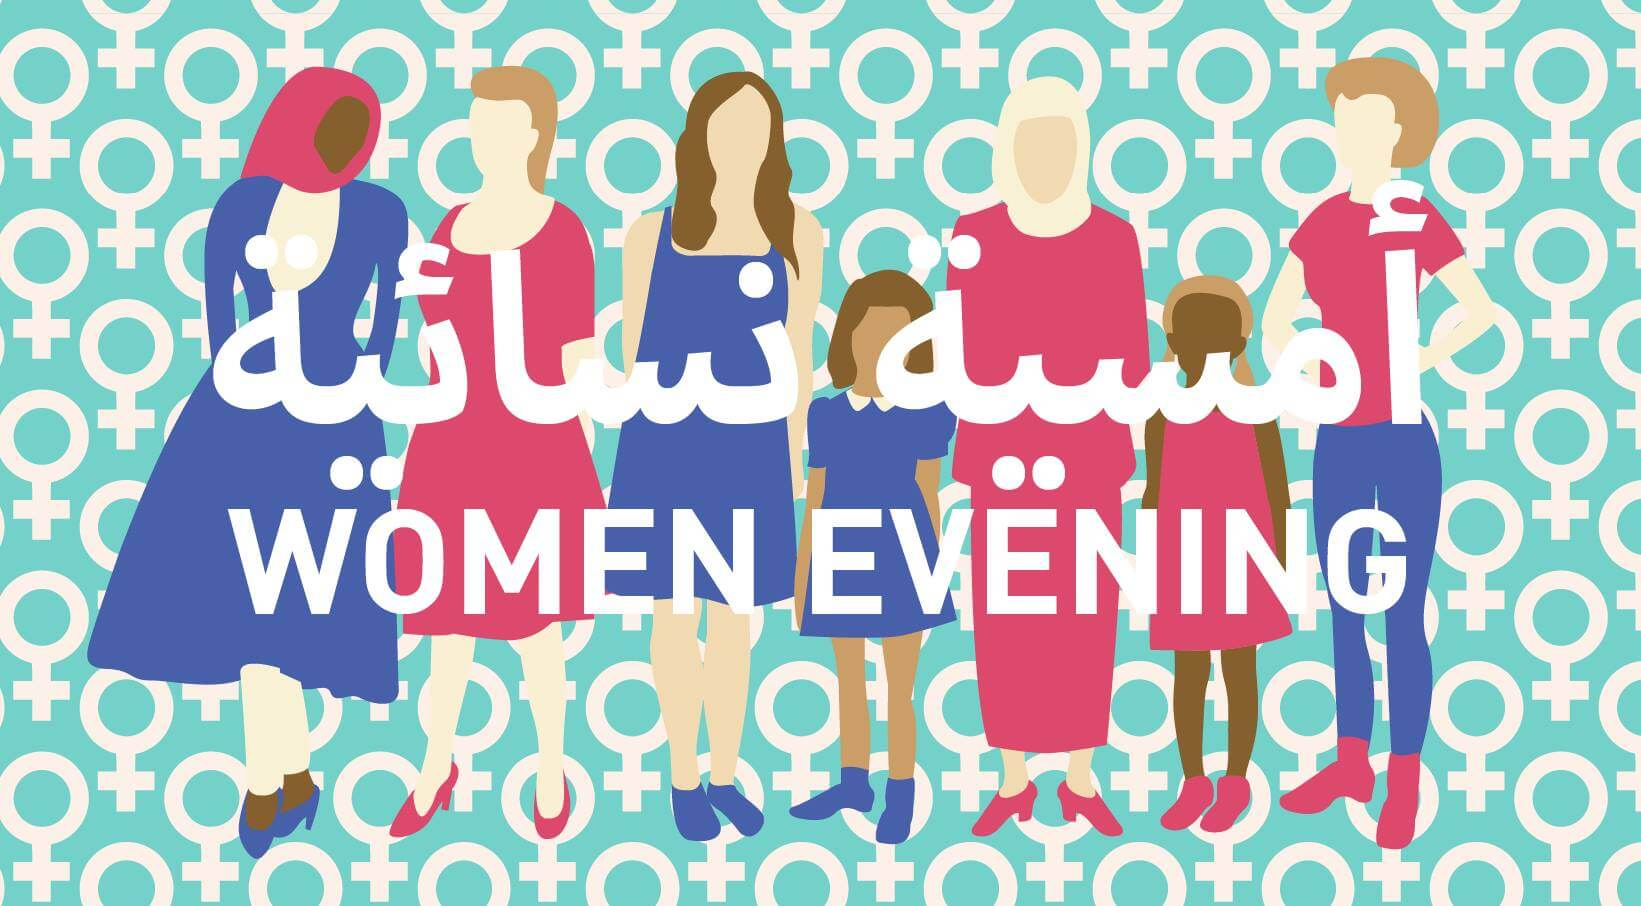 Women Evening at De Voorkamer